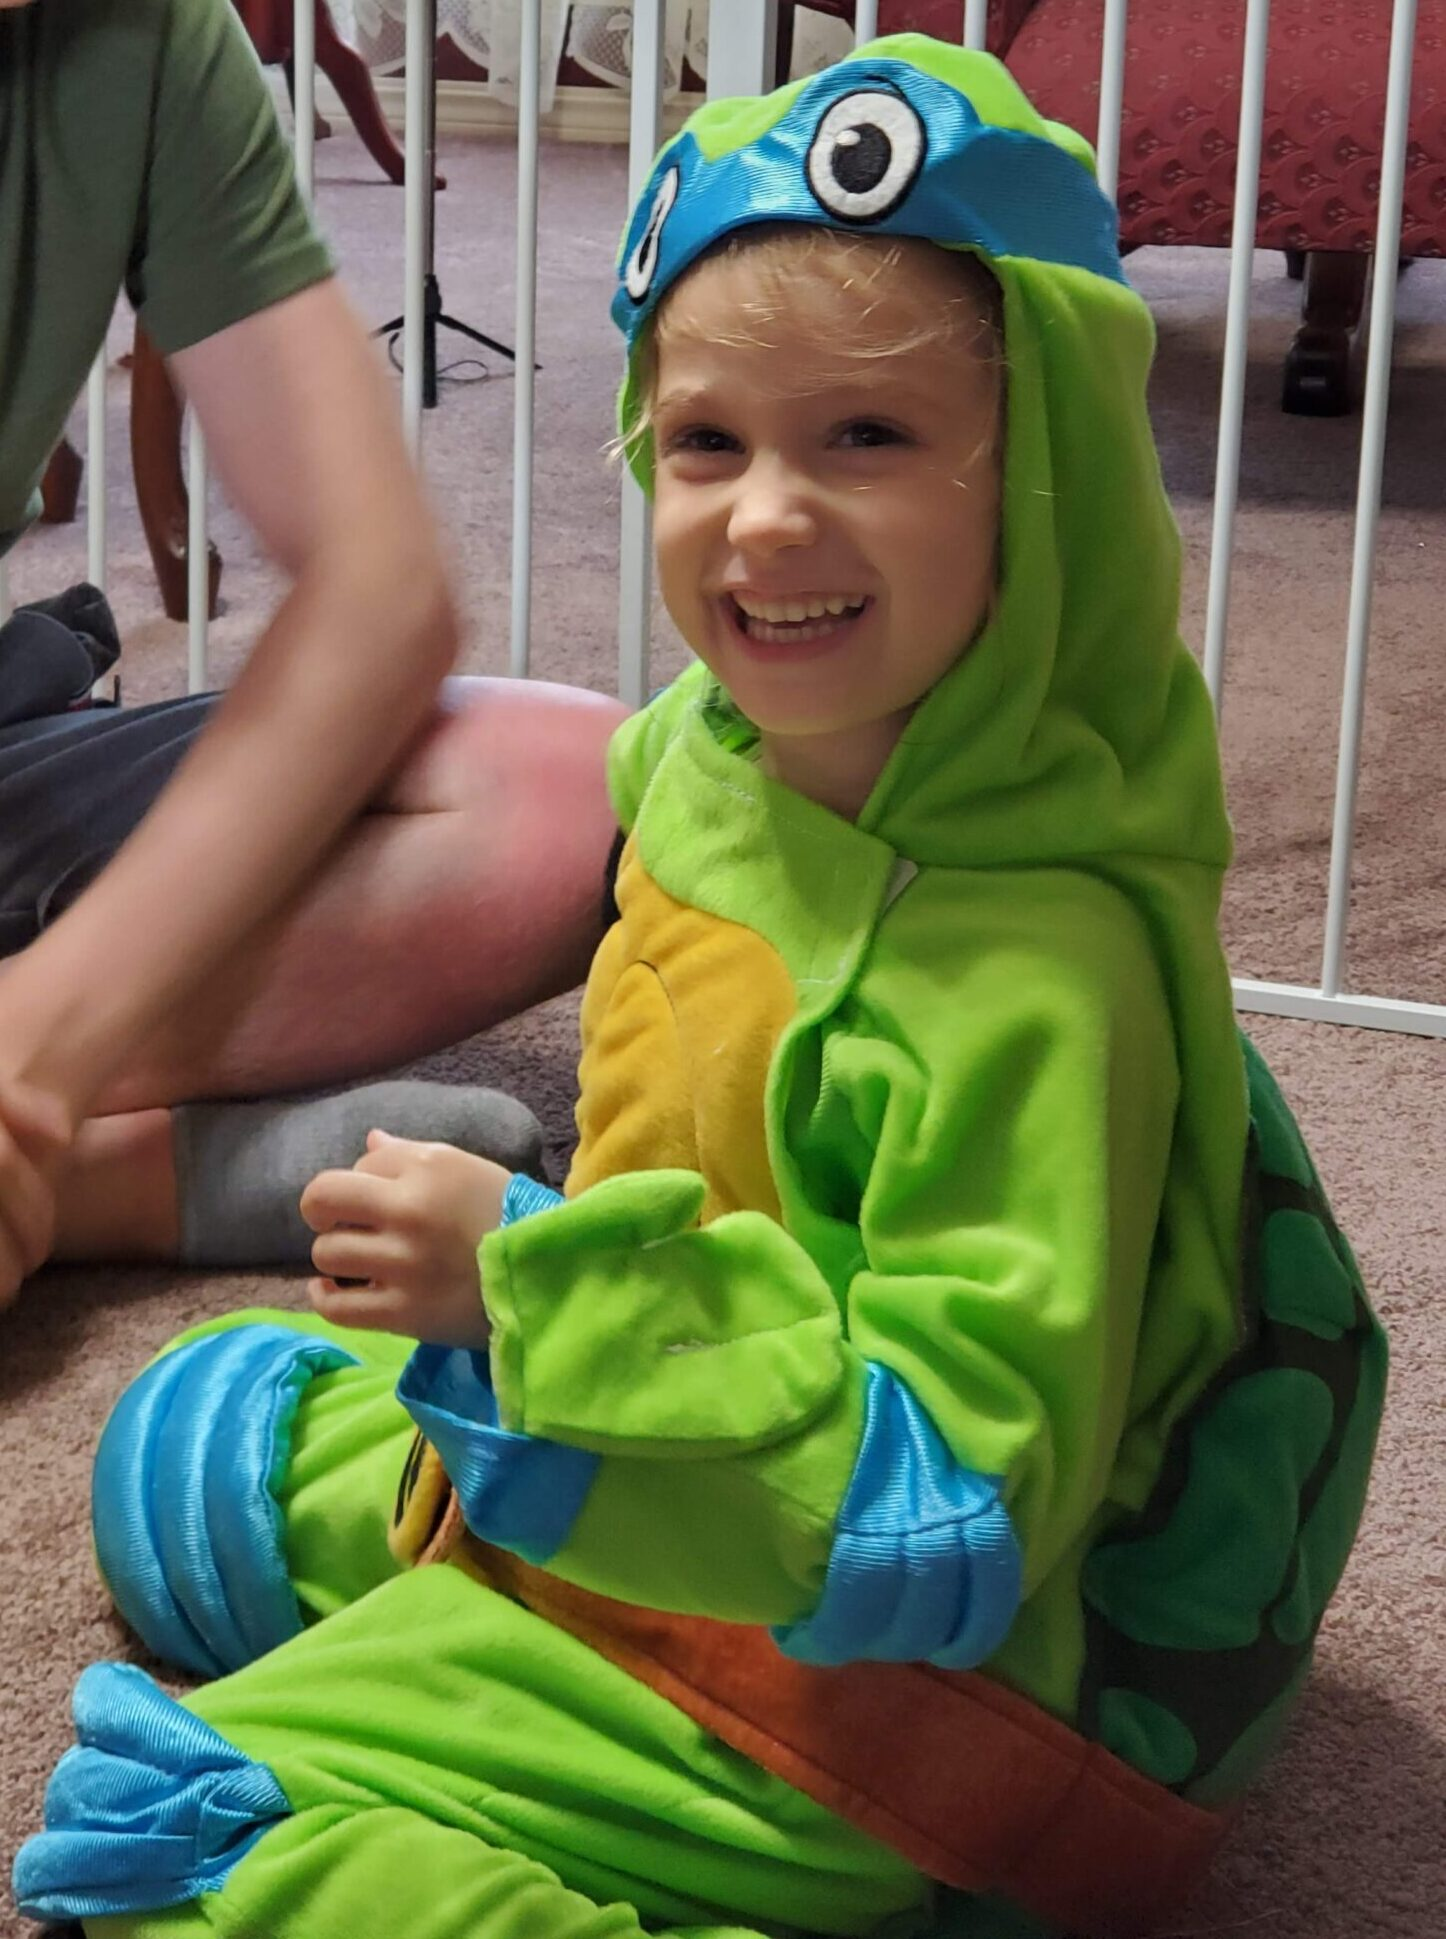 Little white child dressed in a full Leonardo costume with hood. Face is exposed.